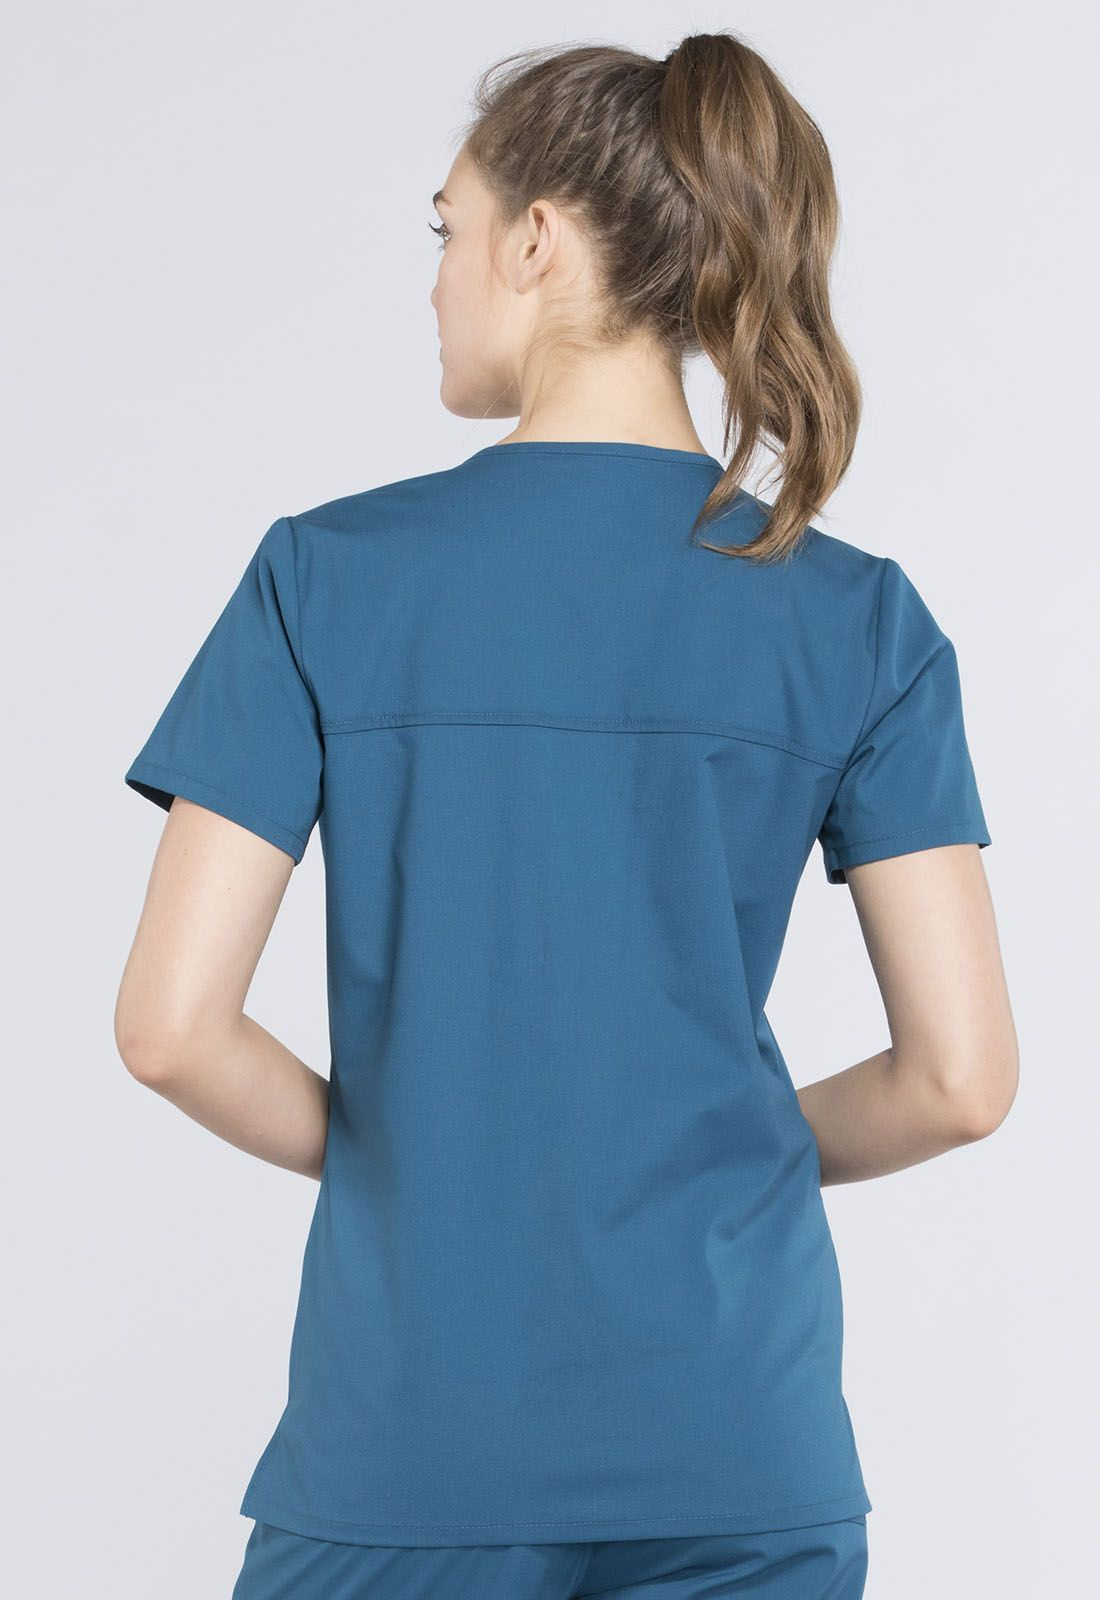 https://medcloth.by/images/stories/virtuemart/product/ww655-carw-46.jpg